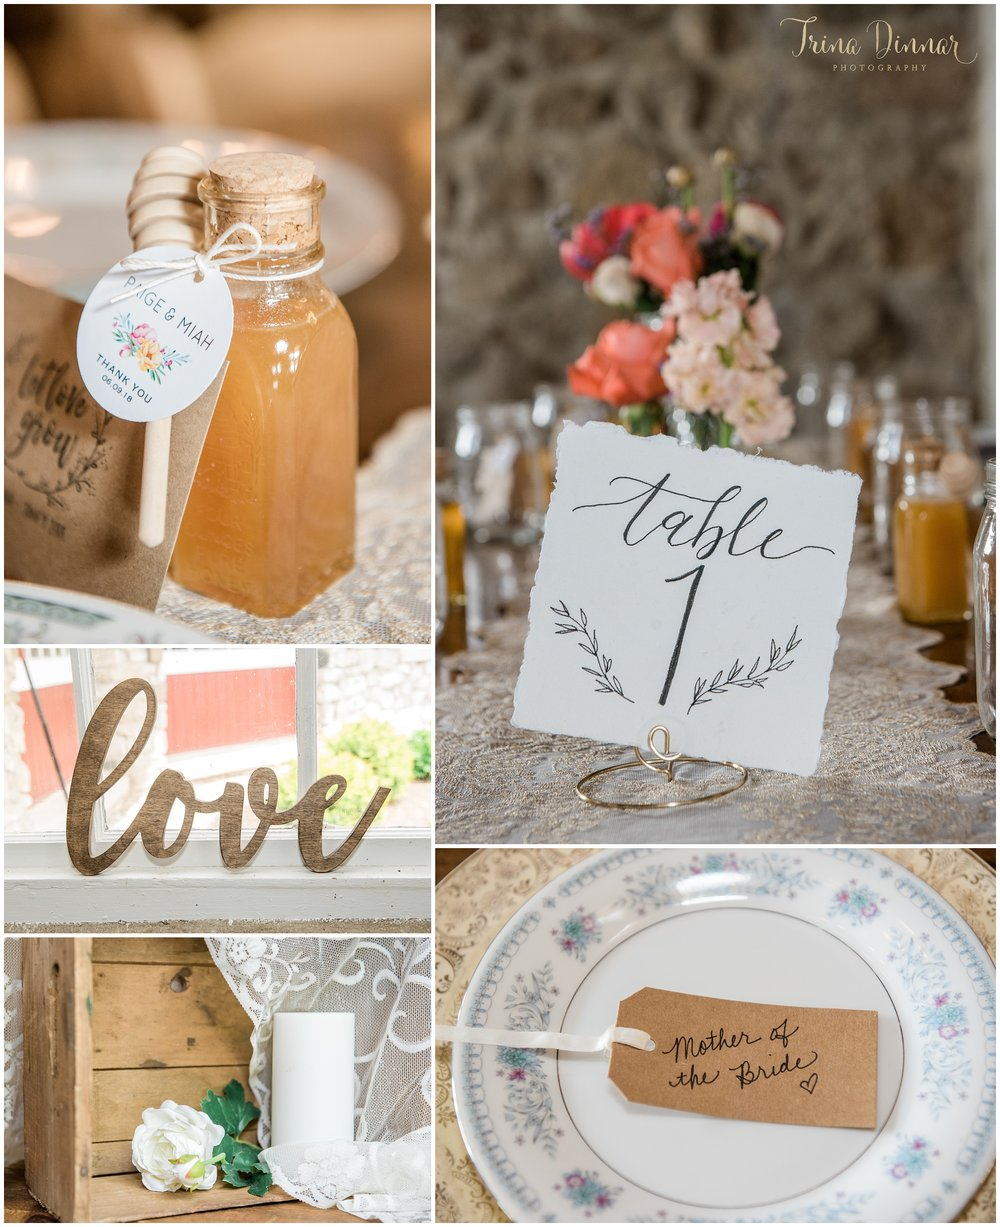 Rustic Maine wedding reception detail photography